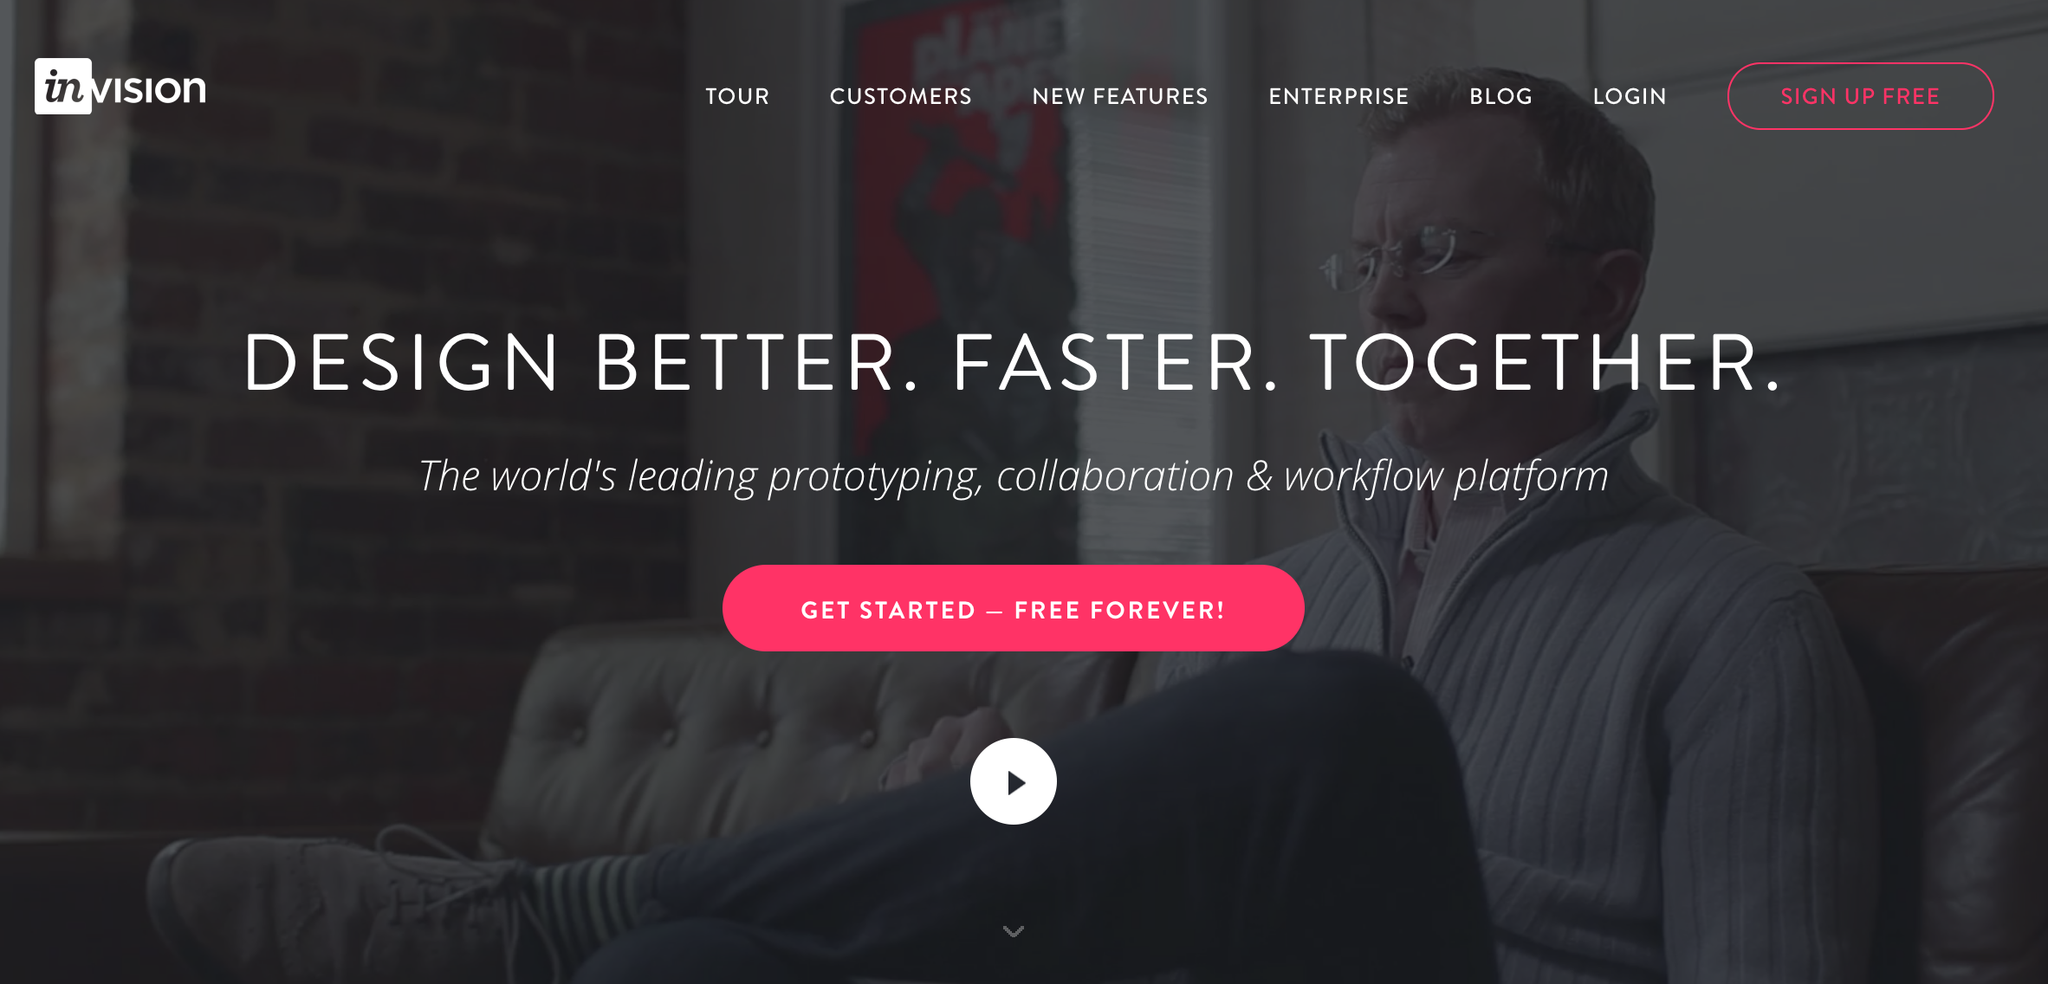 screenshot of the Invision website